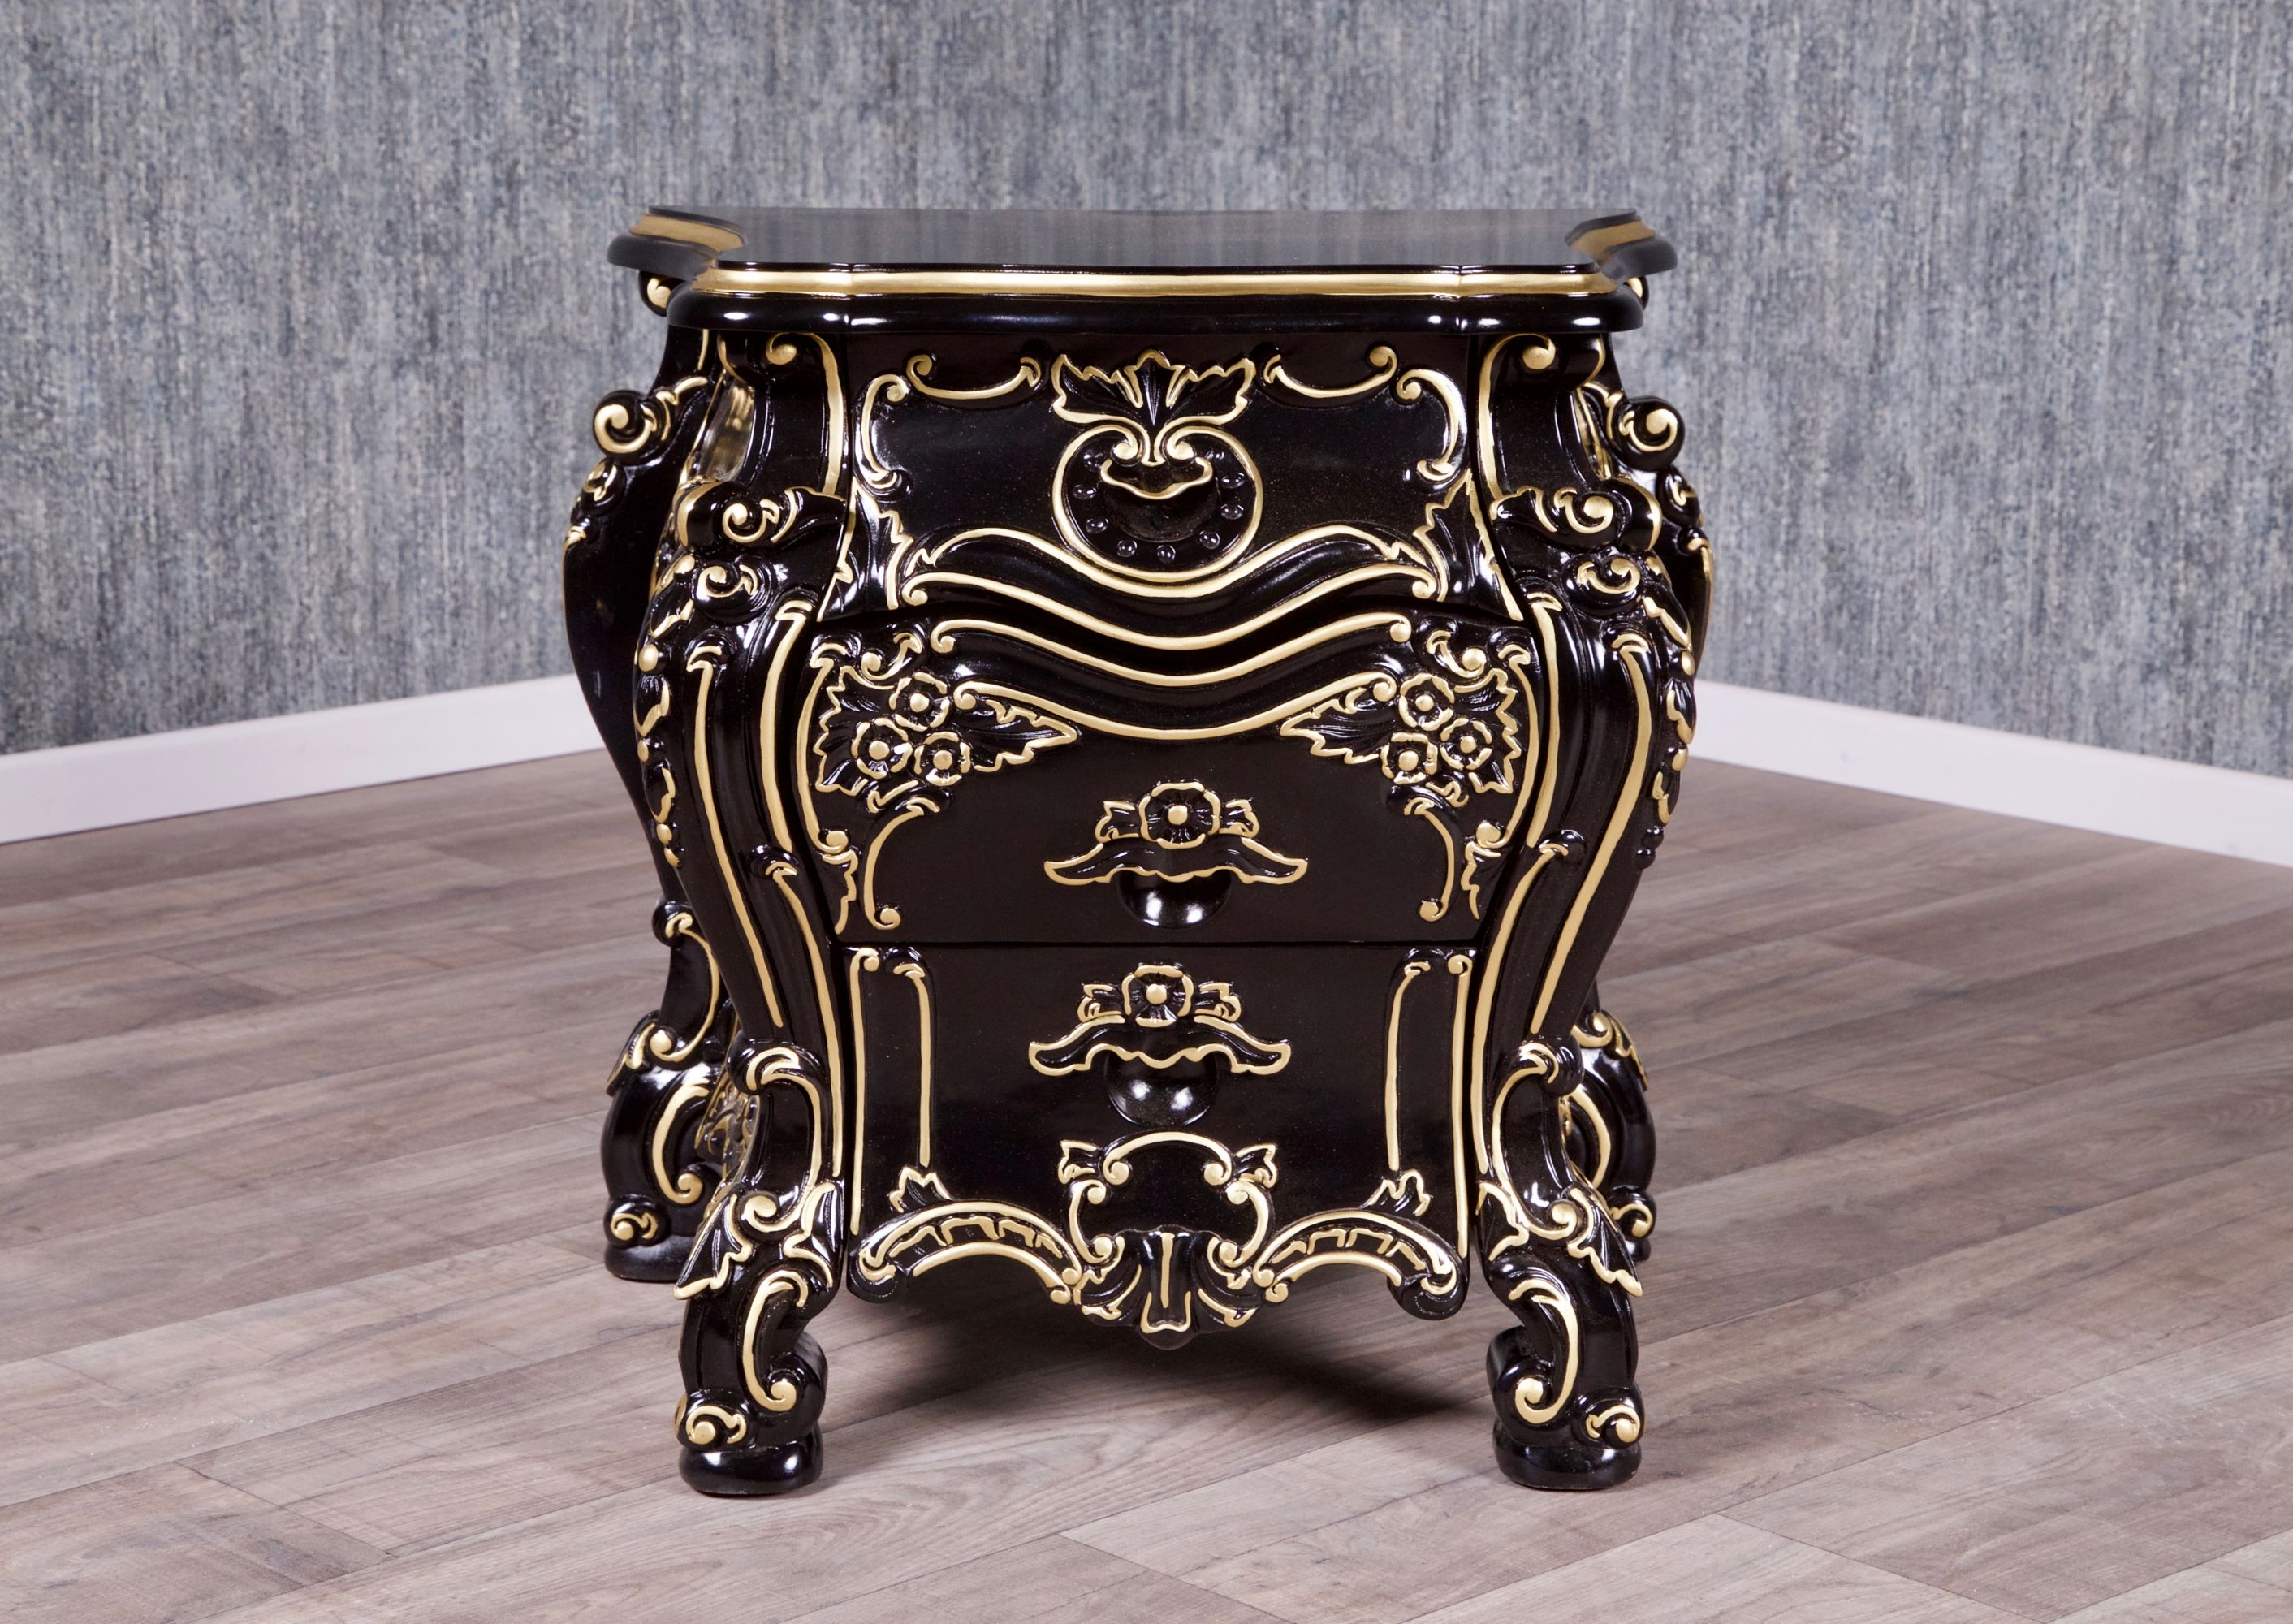 barock nachttisch rtn nachttische shop repro antik. Black Bedroom Furniture Sets. Home Design Ideas